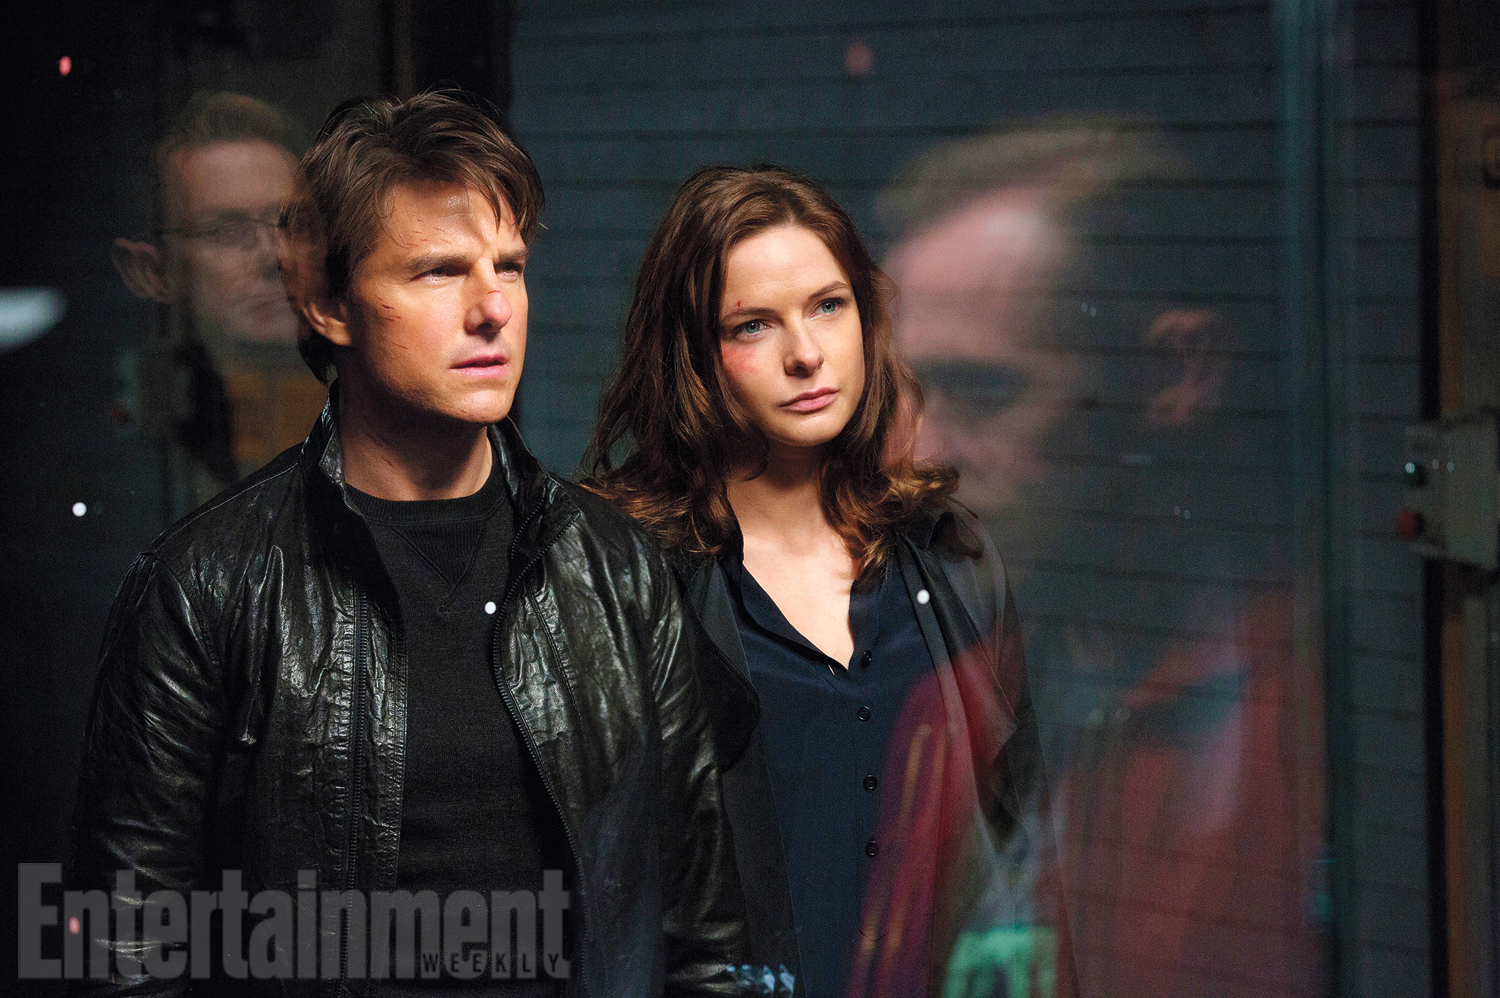 Tom Cruise and Rebecca Ferguson in Mission: Impossible - Rogue Nation